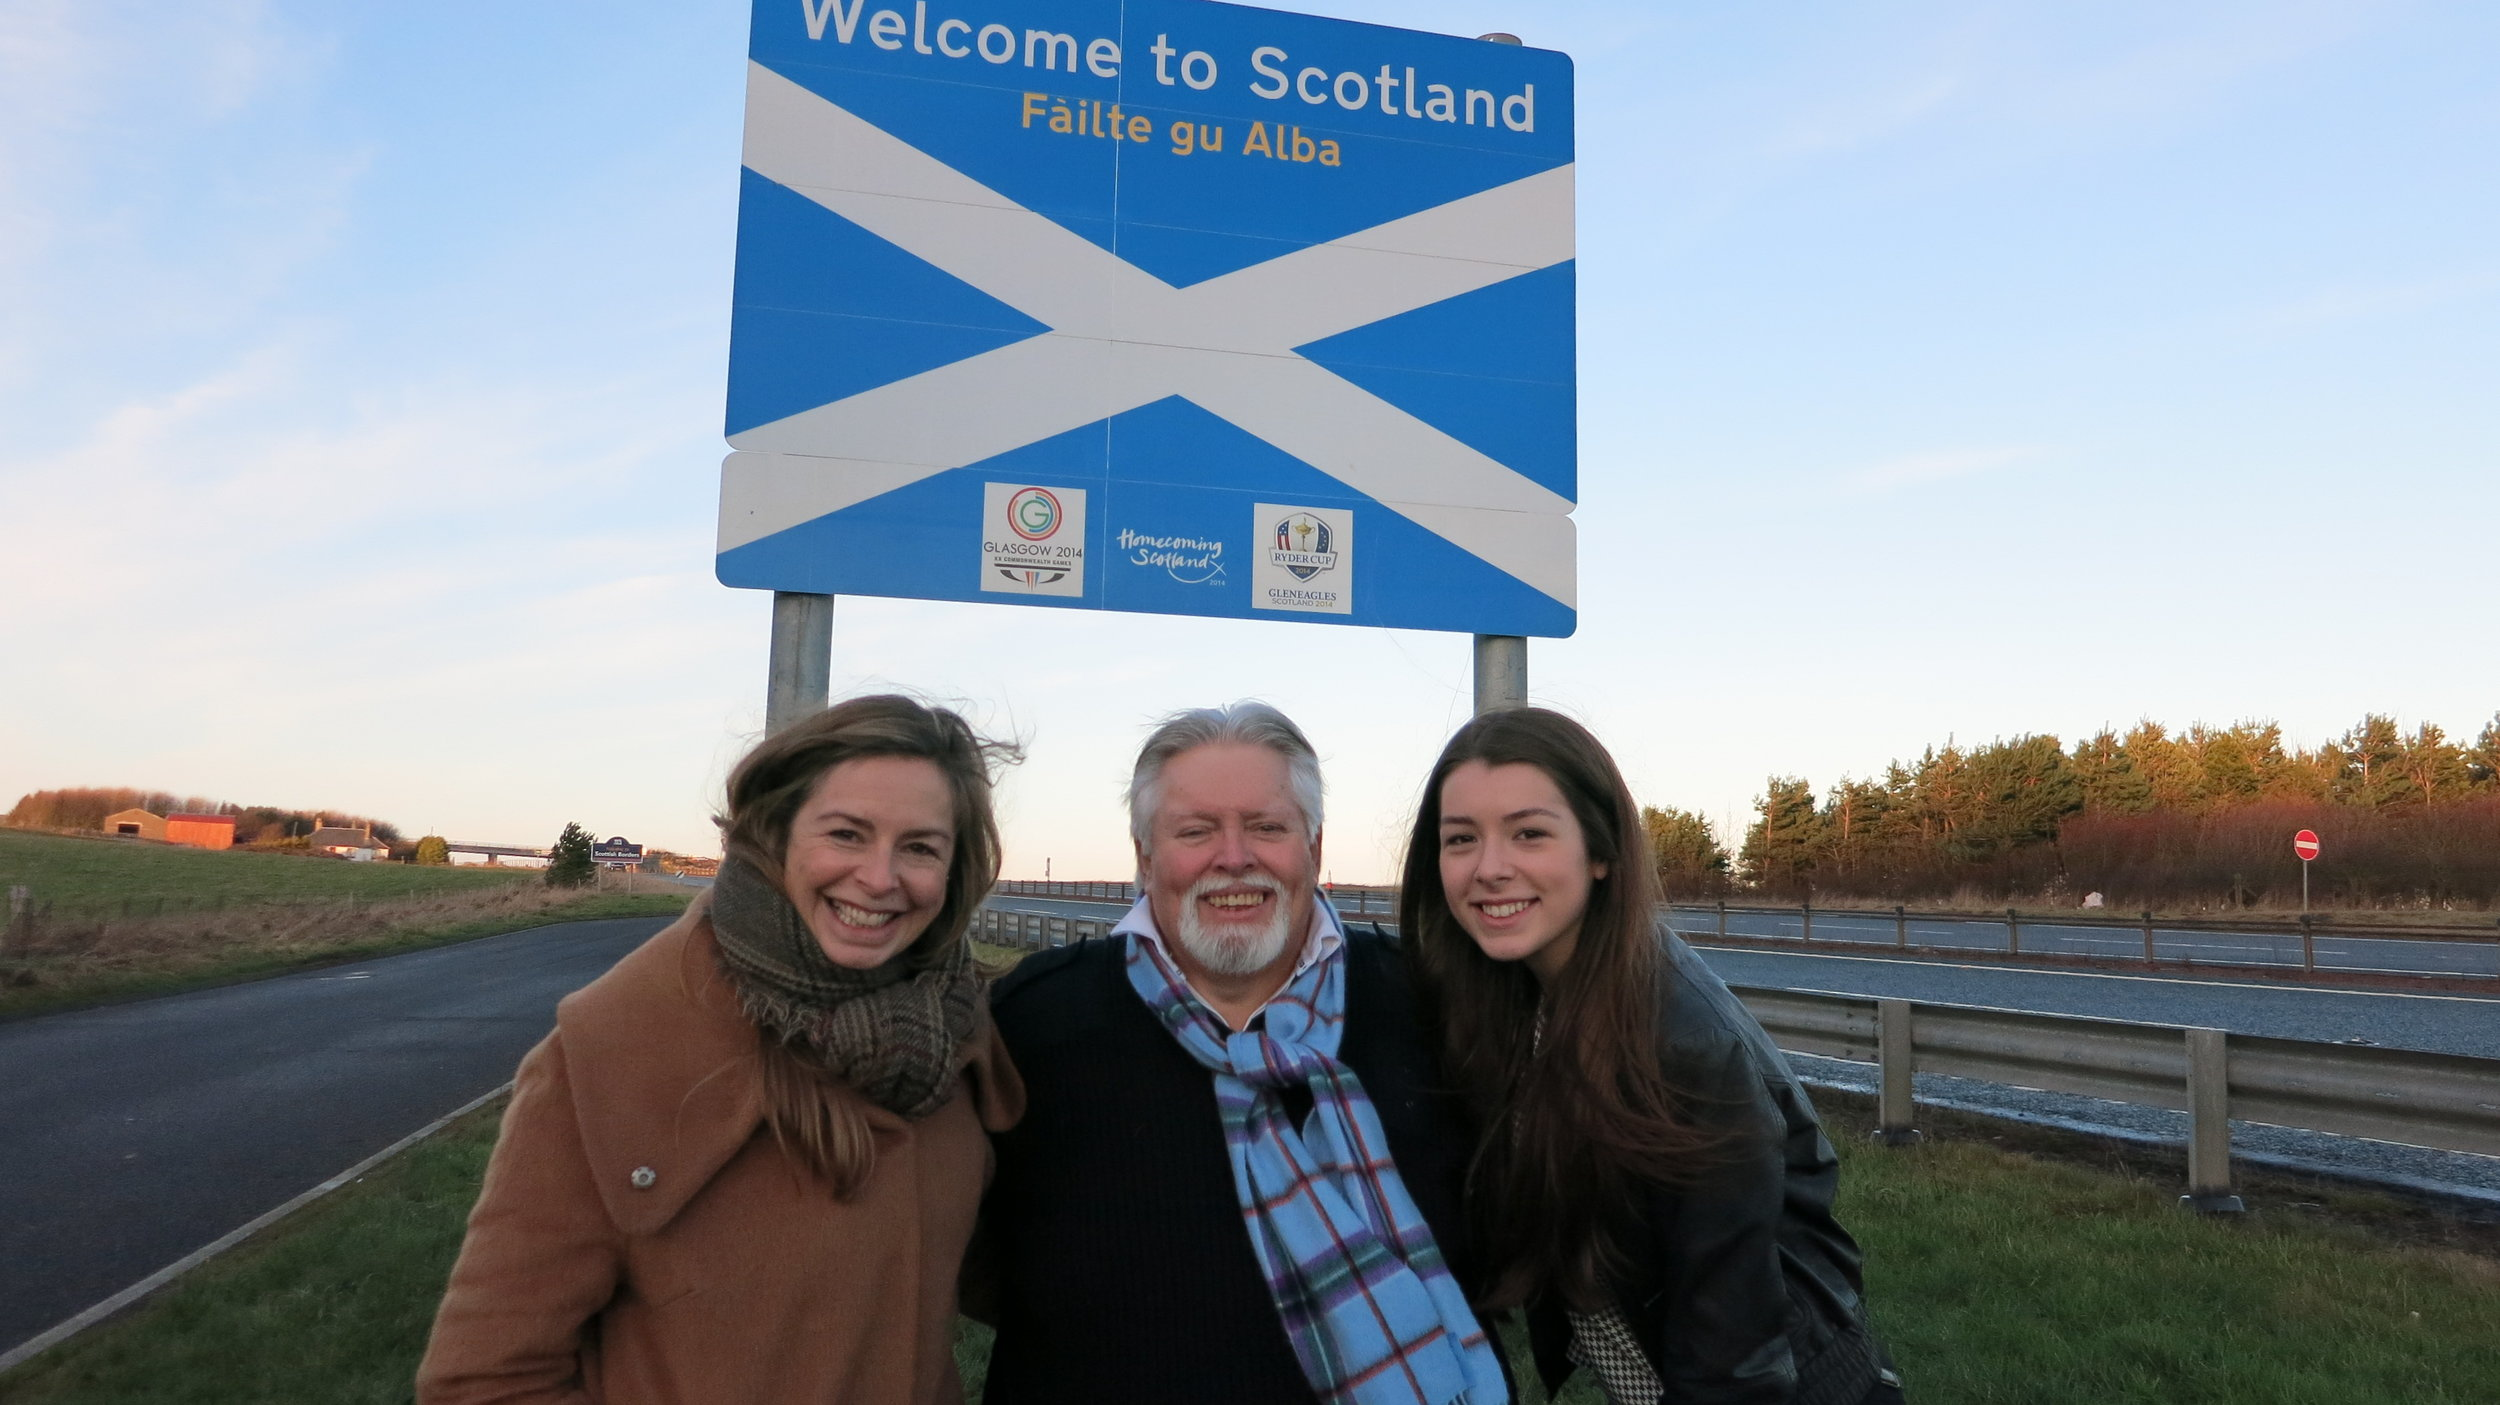 """A special moment with Lisa Henderson and her daughter Chloe. Lisa, first met online, was first to buy into my dream to move to Scotland writing a wonderful article about by dream for the online edition of the national newspaper, """"The Scotlsman."""""""